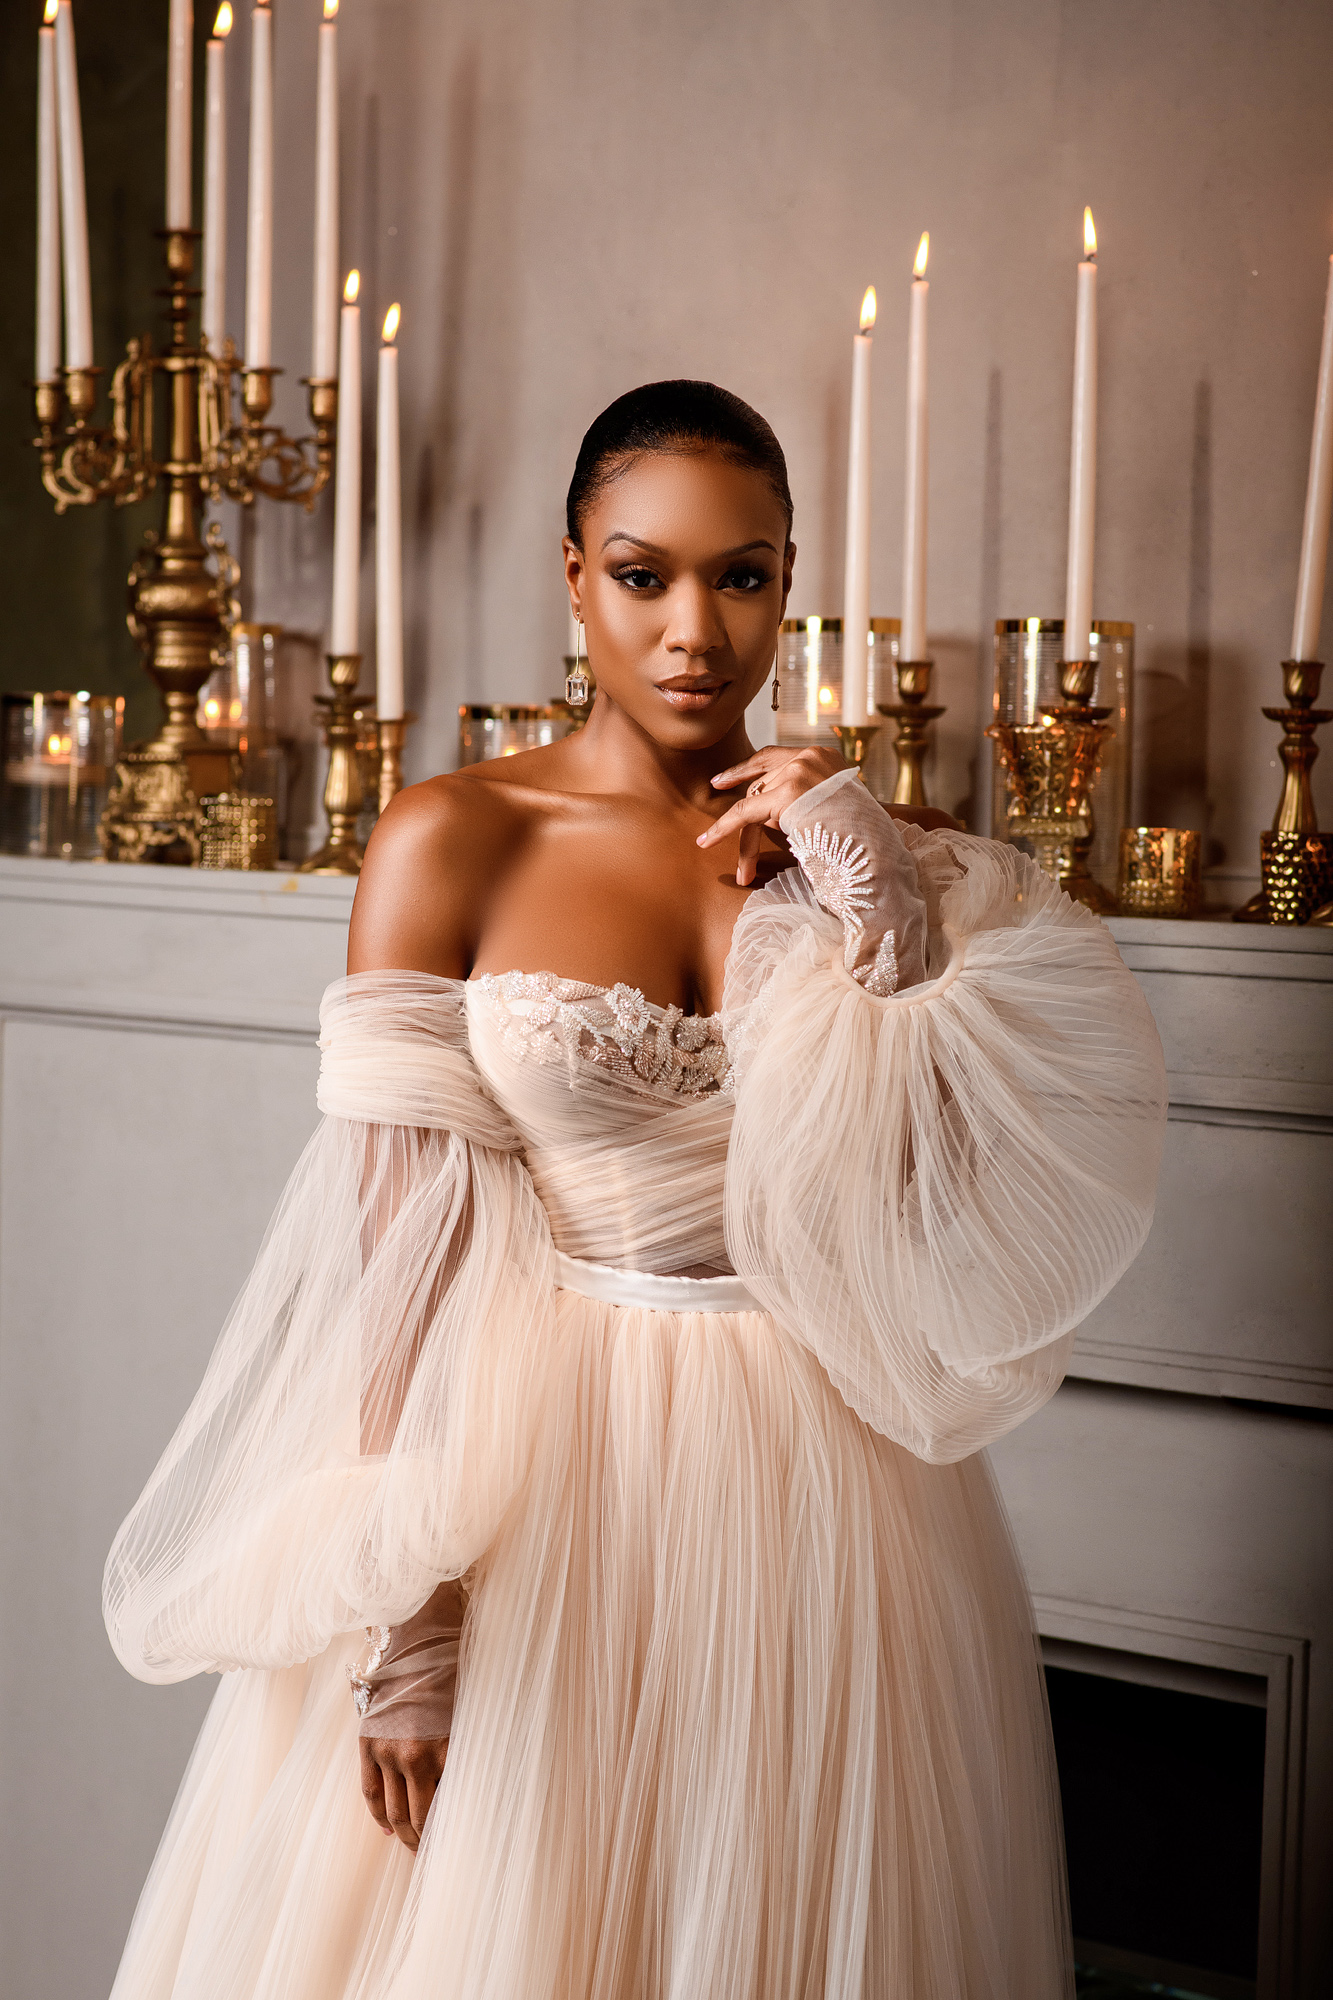 stunning-portrait-of-bride-in-blush-pink-strapless-couture-gown-and-bell-sleeves-joshua-dwain-photography